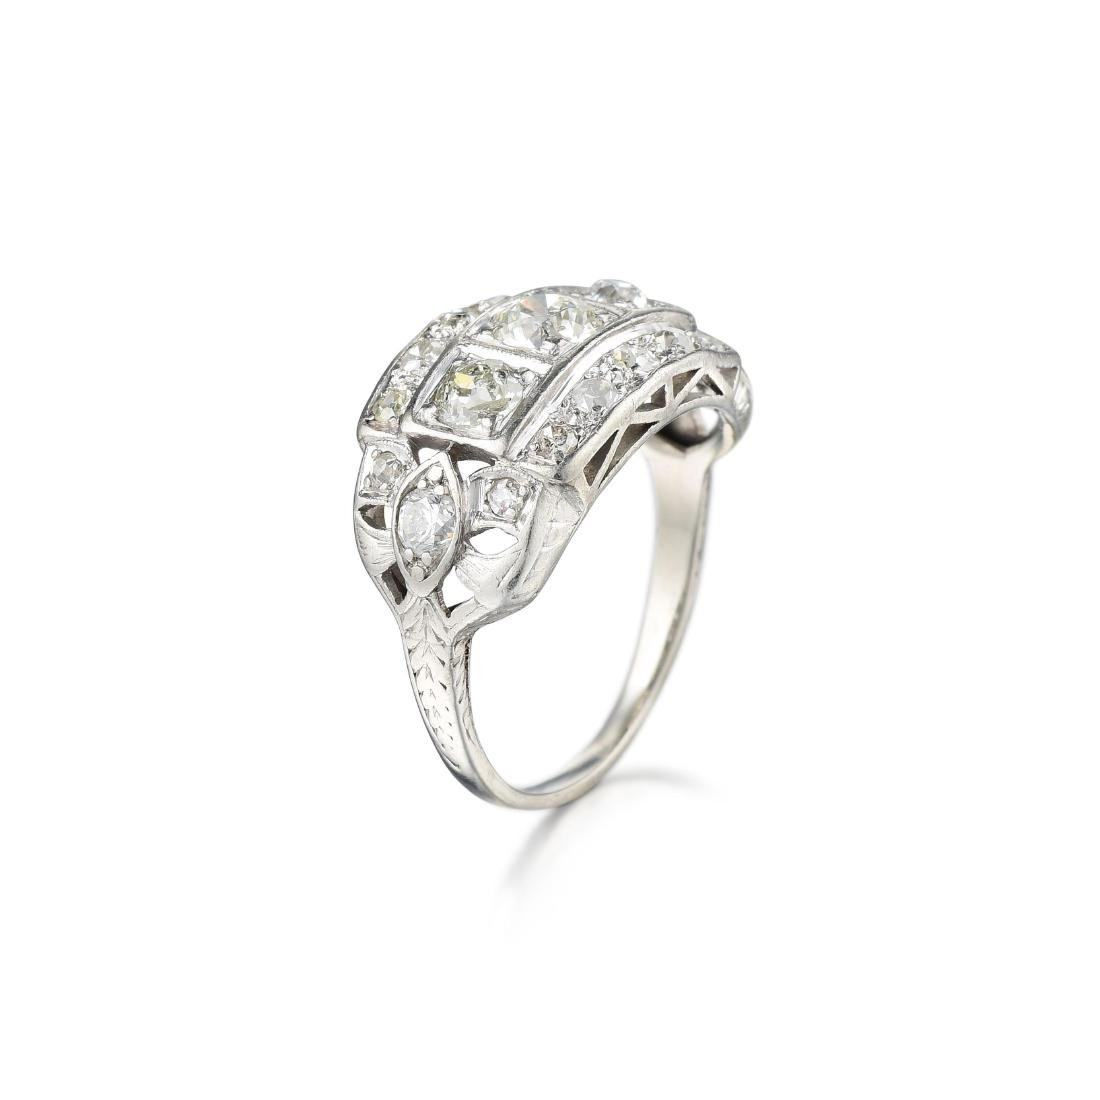 Antique Diamond Platinum Ring - 2